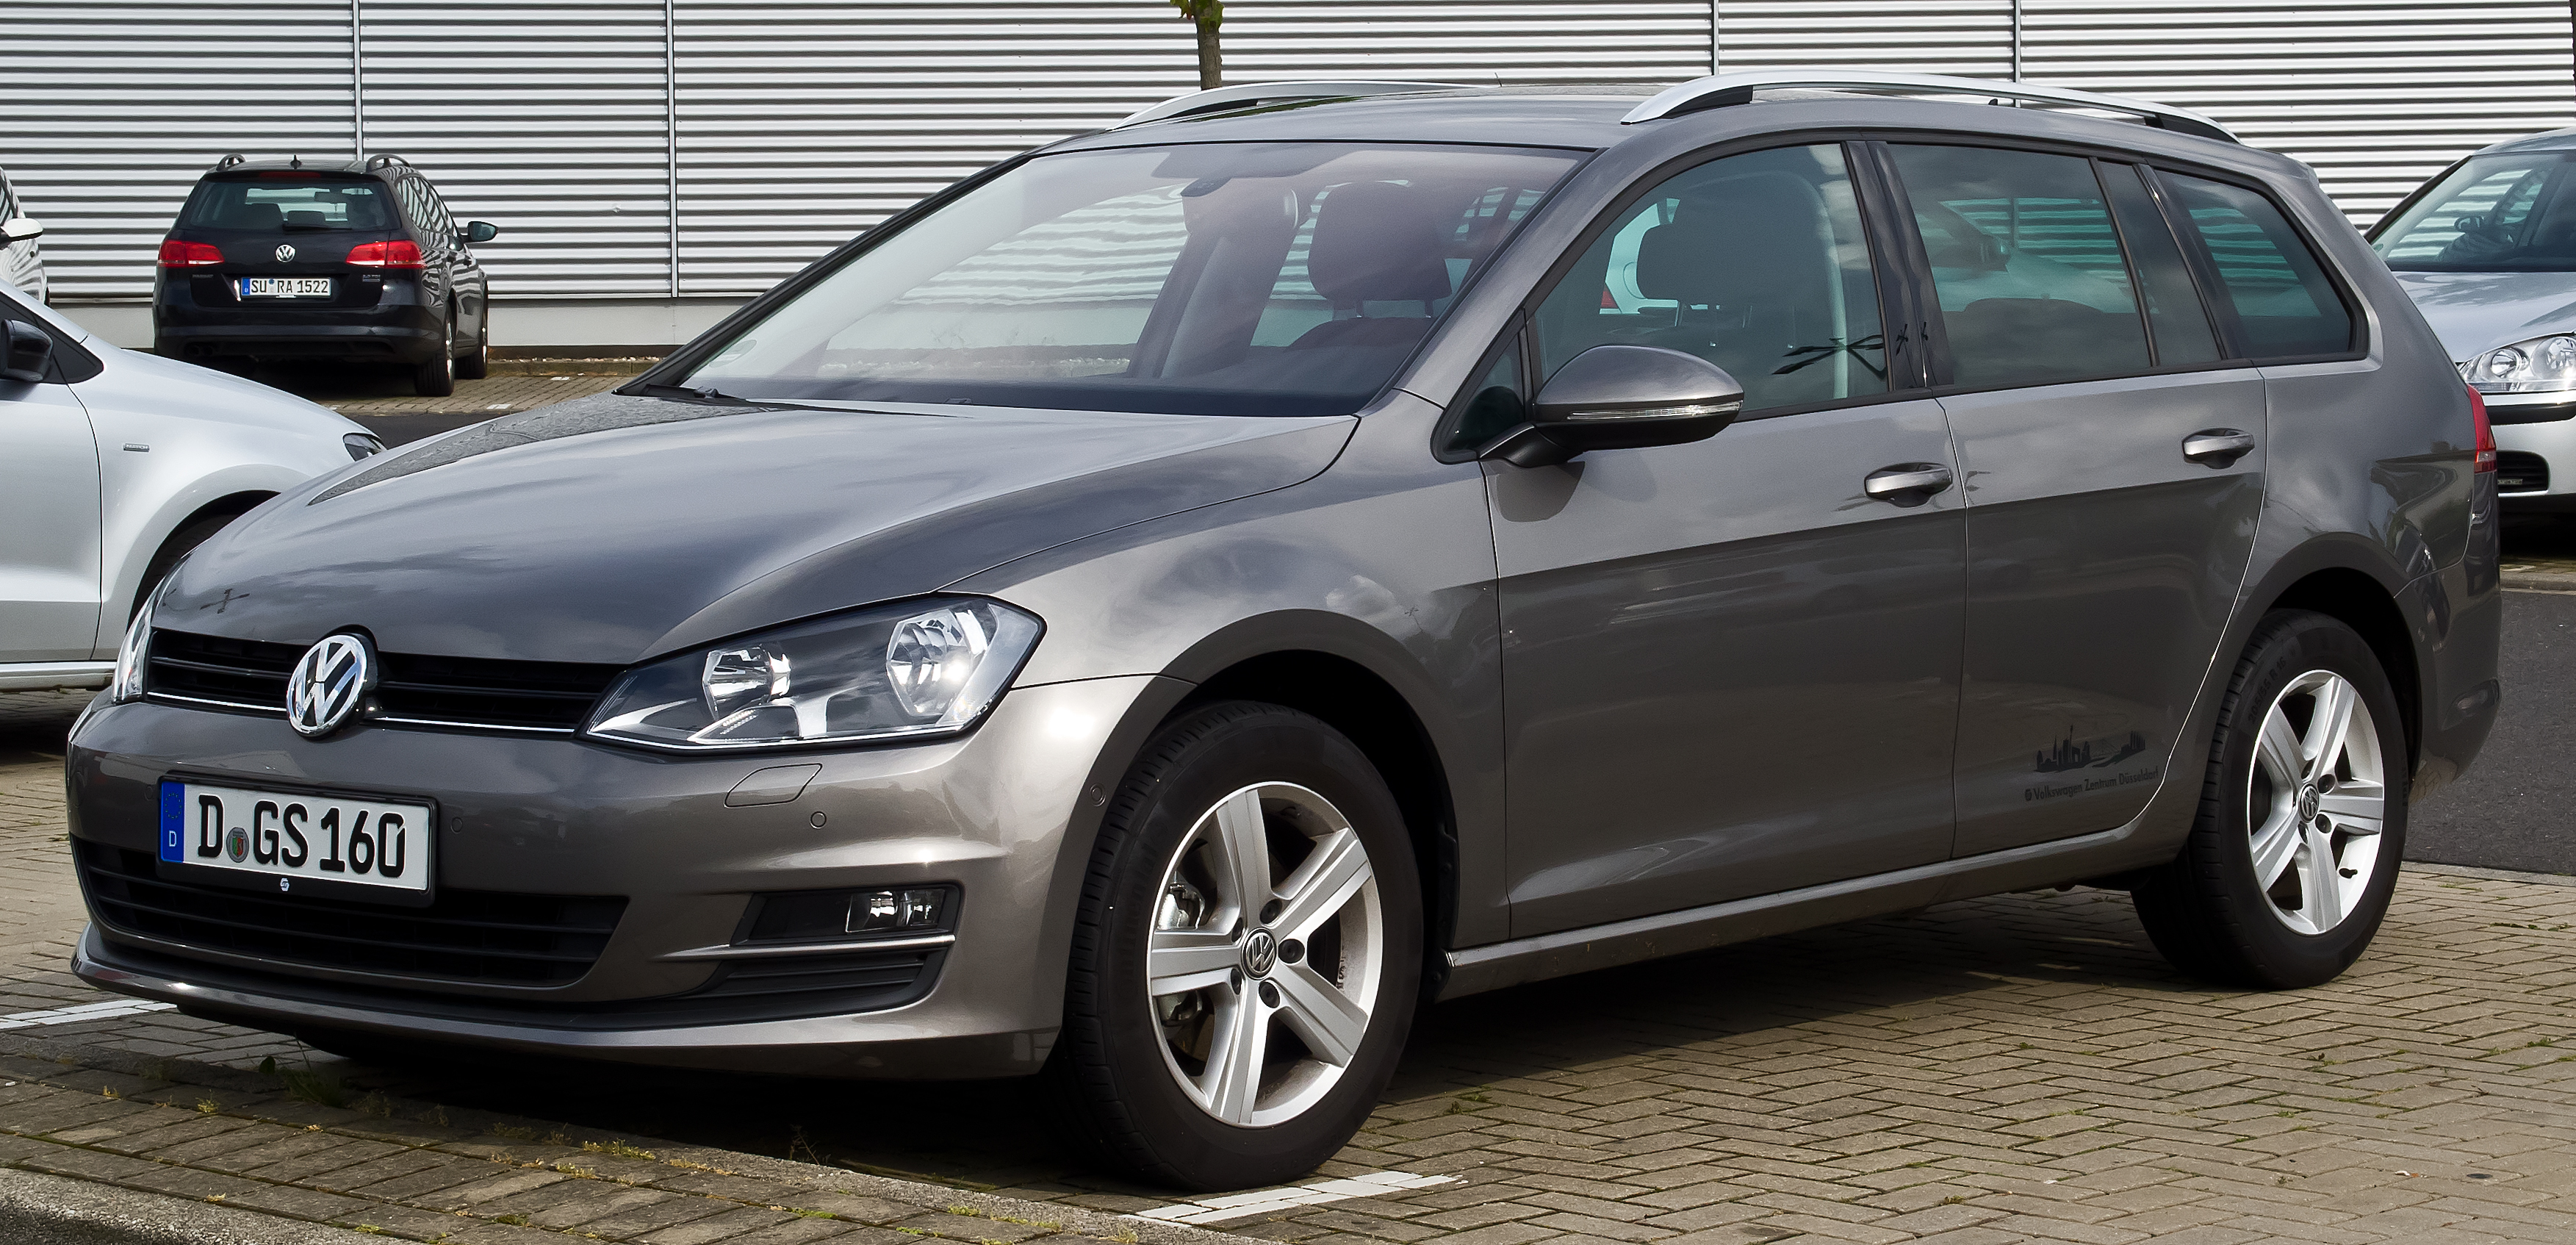 2014 volkswagen golf vi variant pictures information and specs auto. Black Bedroom Furniture Sets. Home Design Ideas